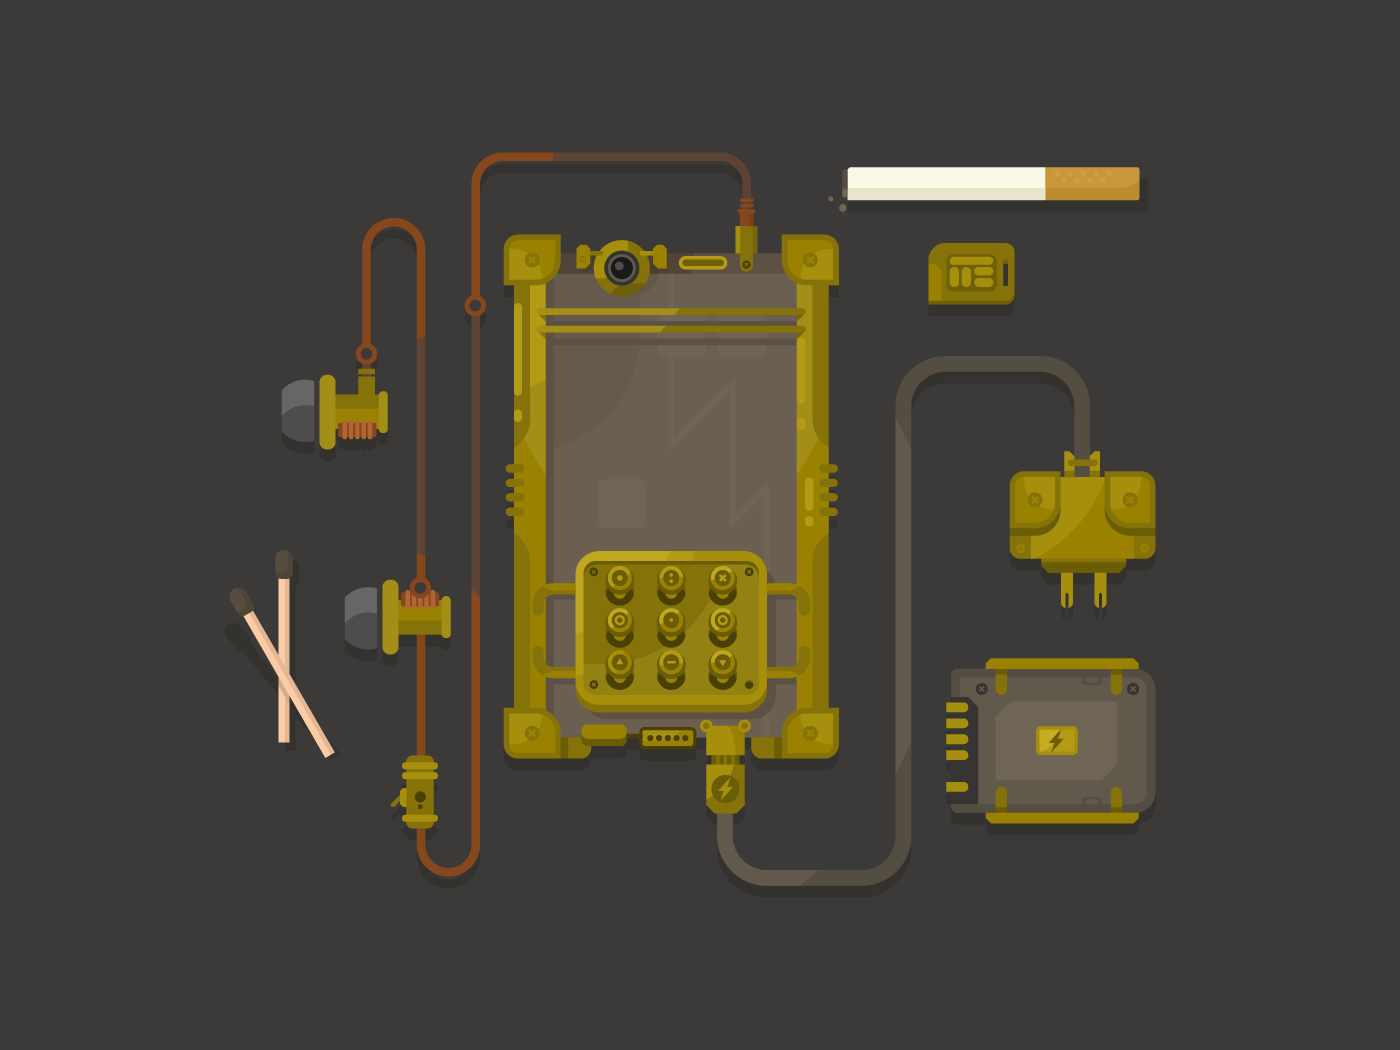 Steampunk design mobile phone flat vector illustration